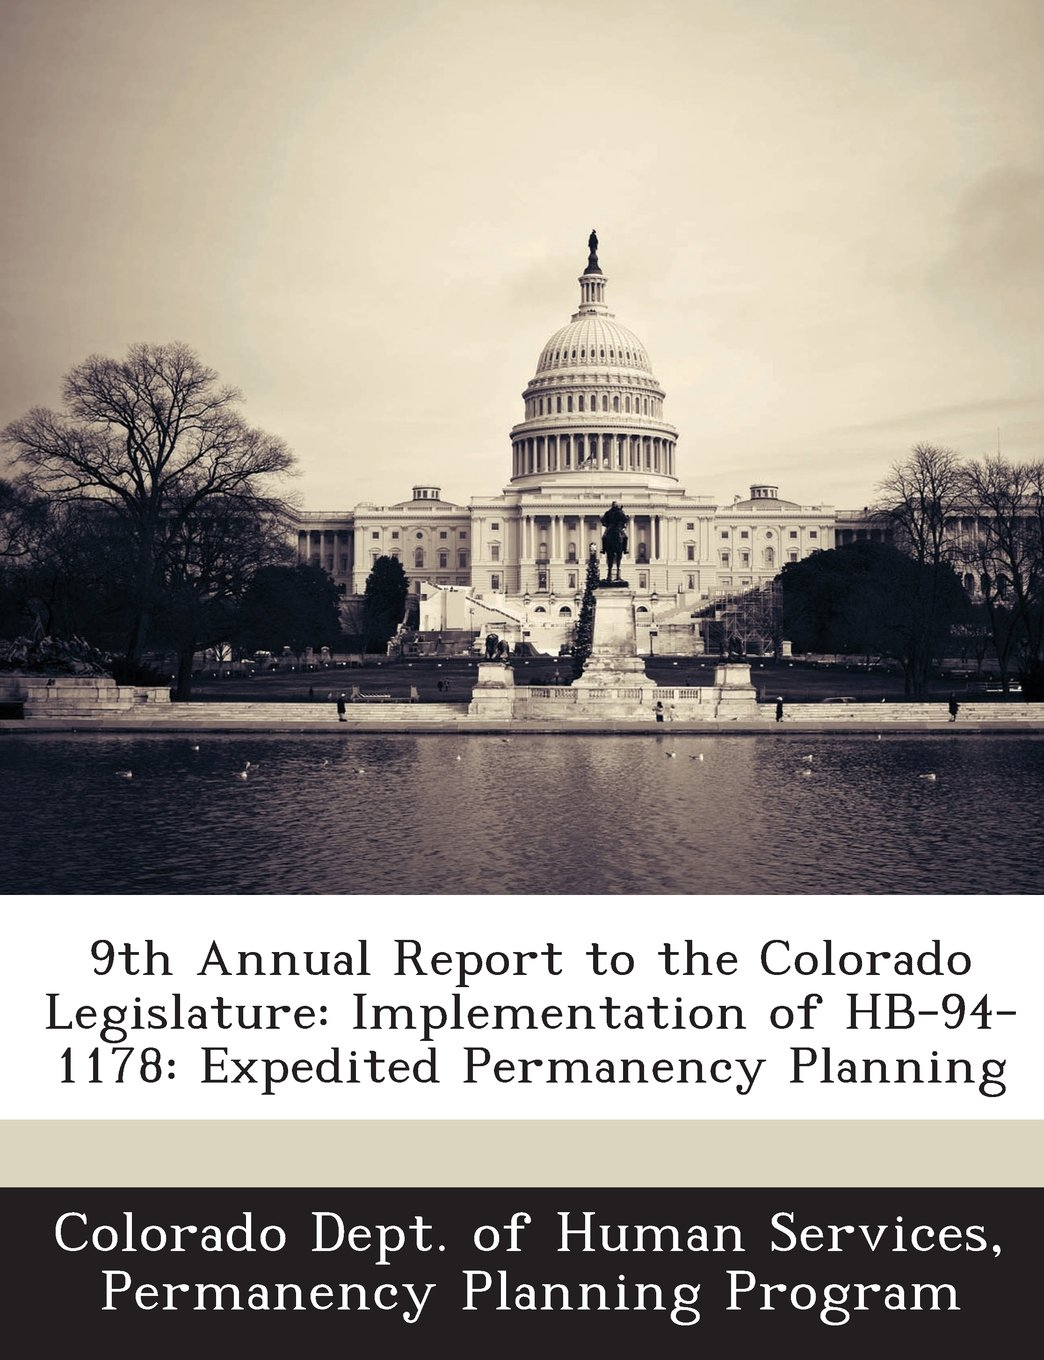 Download 9th Annual Report to the Colorado Legislature: Implementation of HB-94-1178: Expedited Permanency Planning pdf